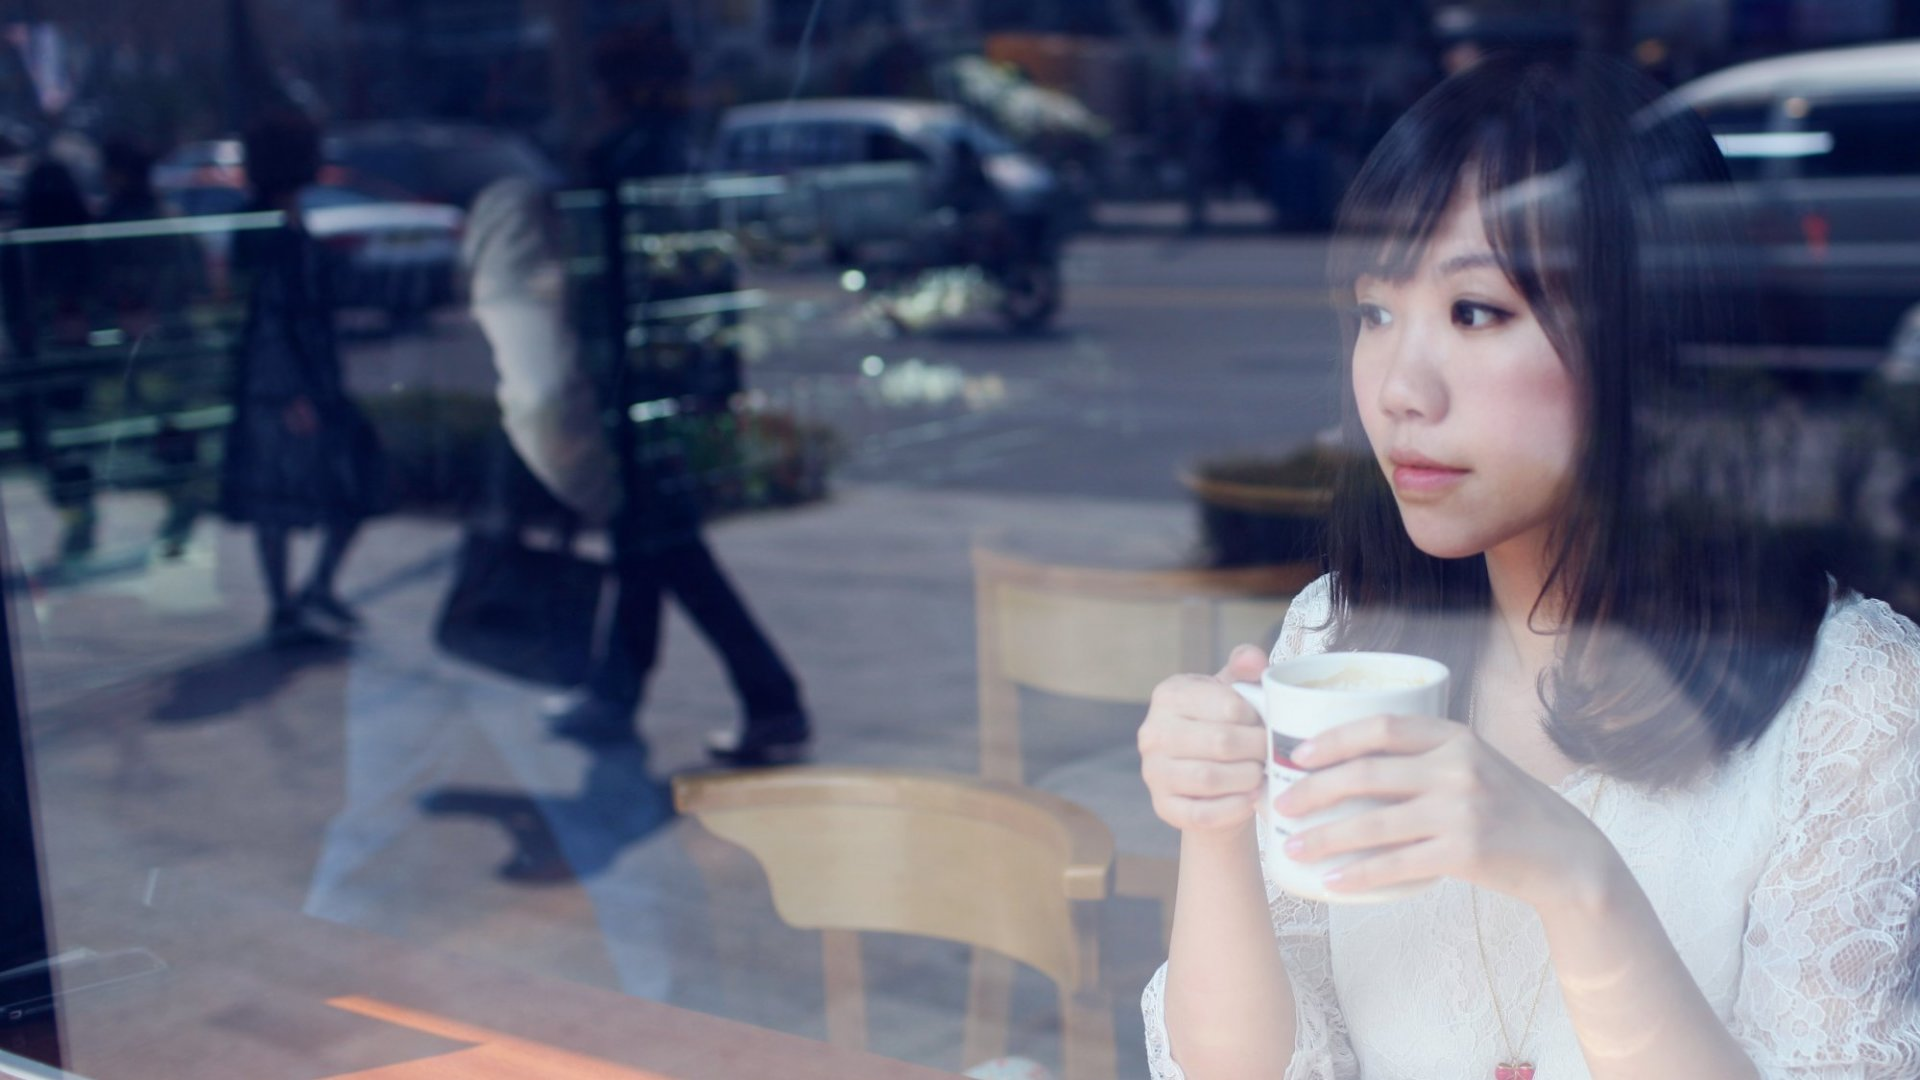 Why Learning to Read Body Language May Have Social Benefits